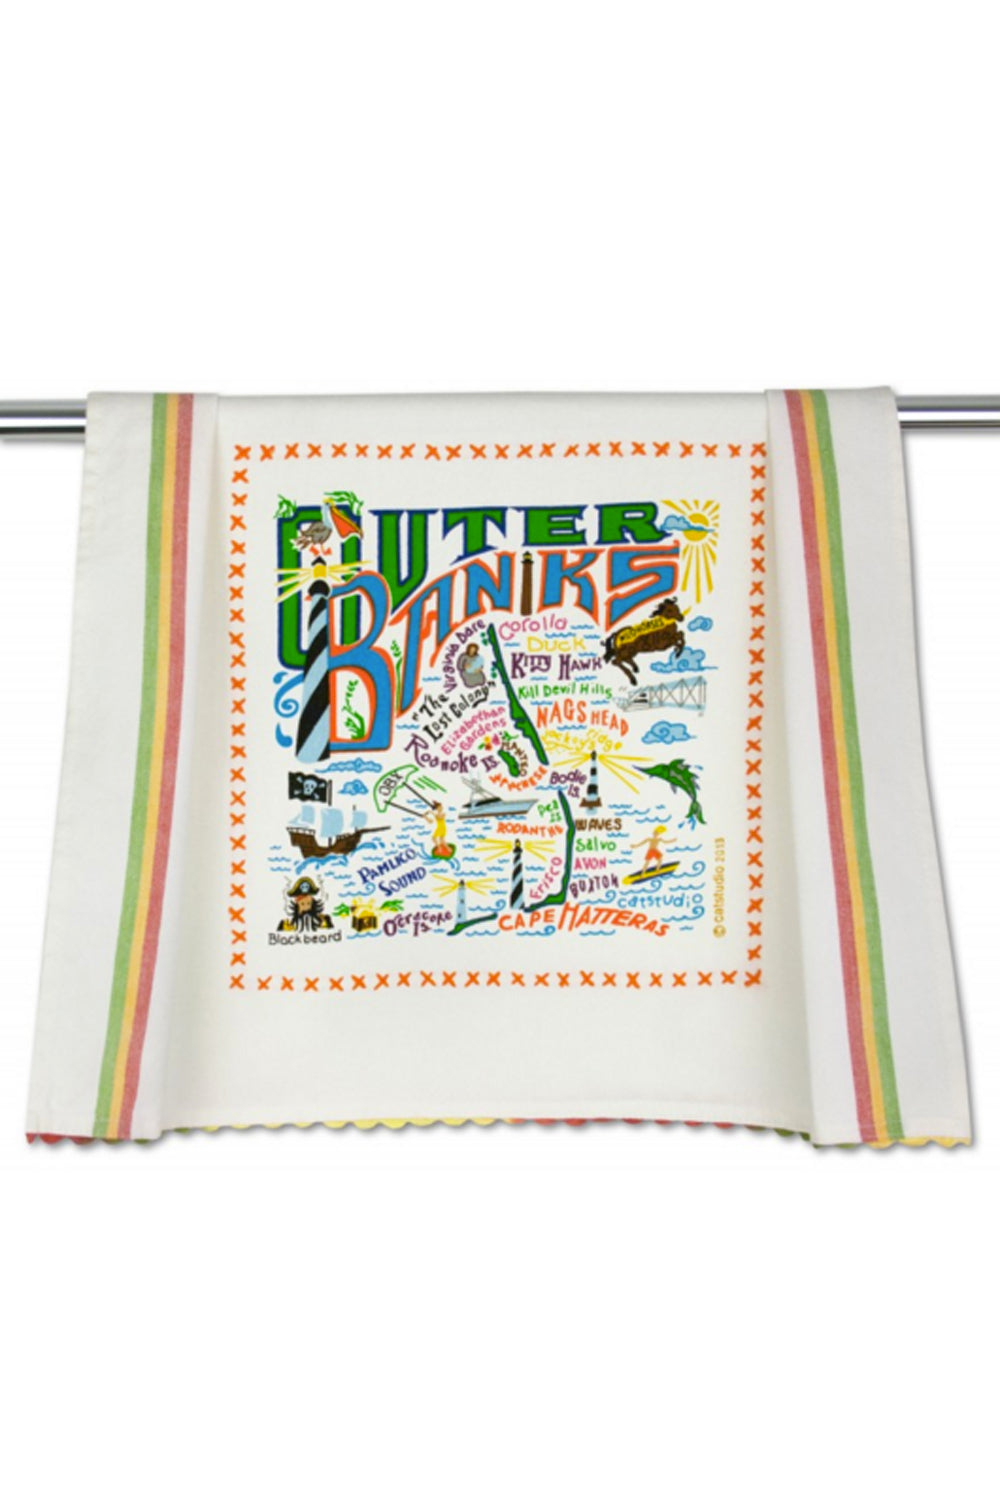 Embroidered Dish Towel - Outer Banks